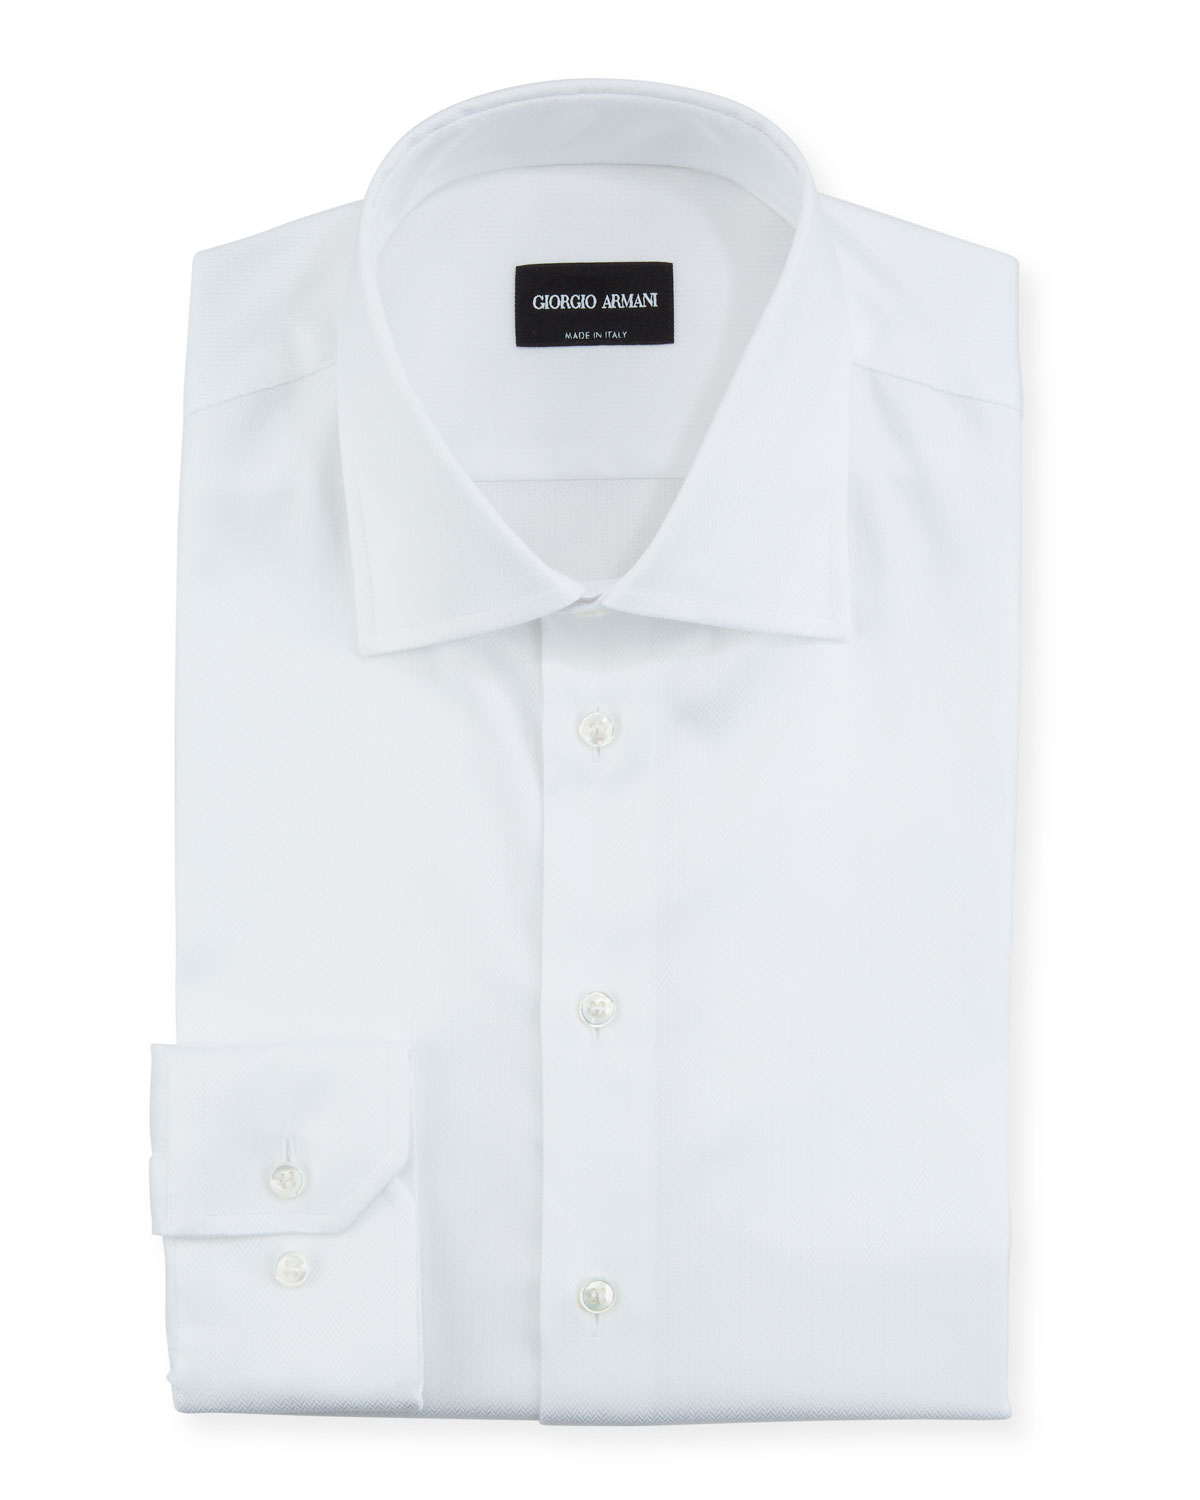 Giorgio Armani Men's Herringbone Dress Shirt